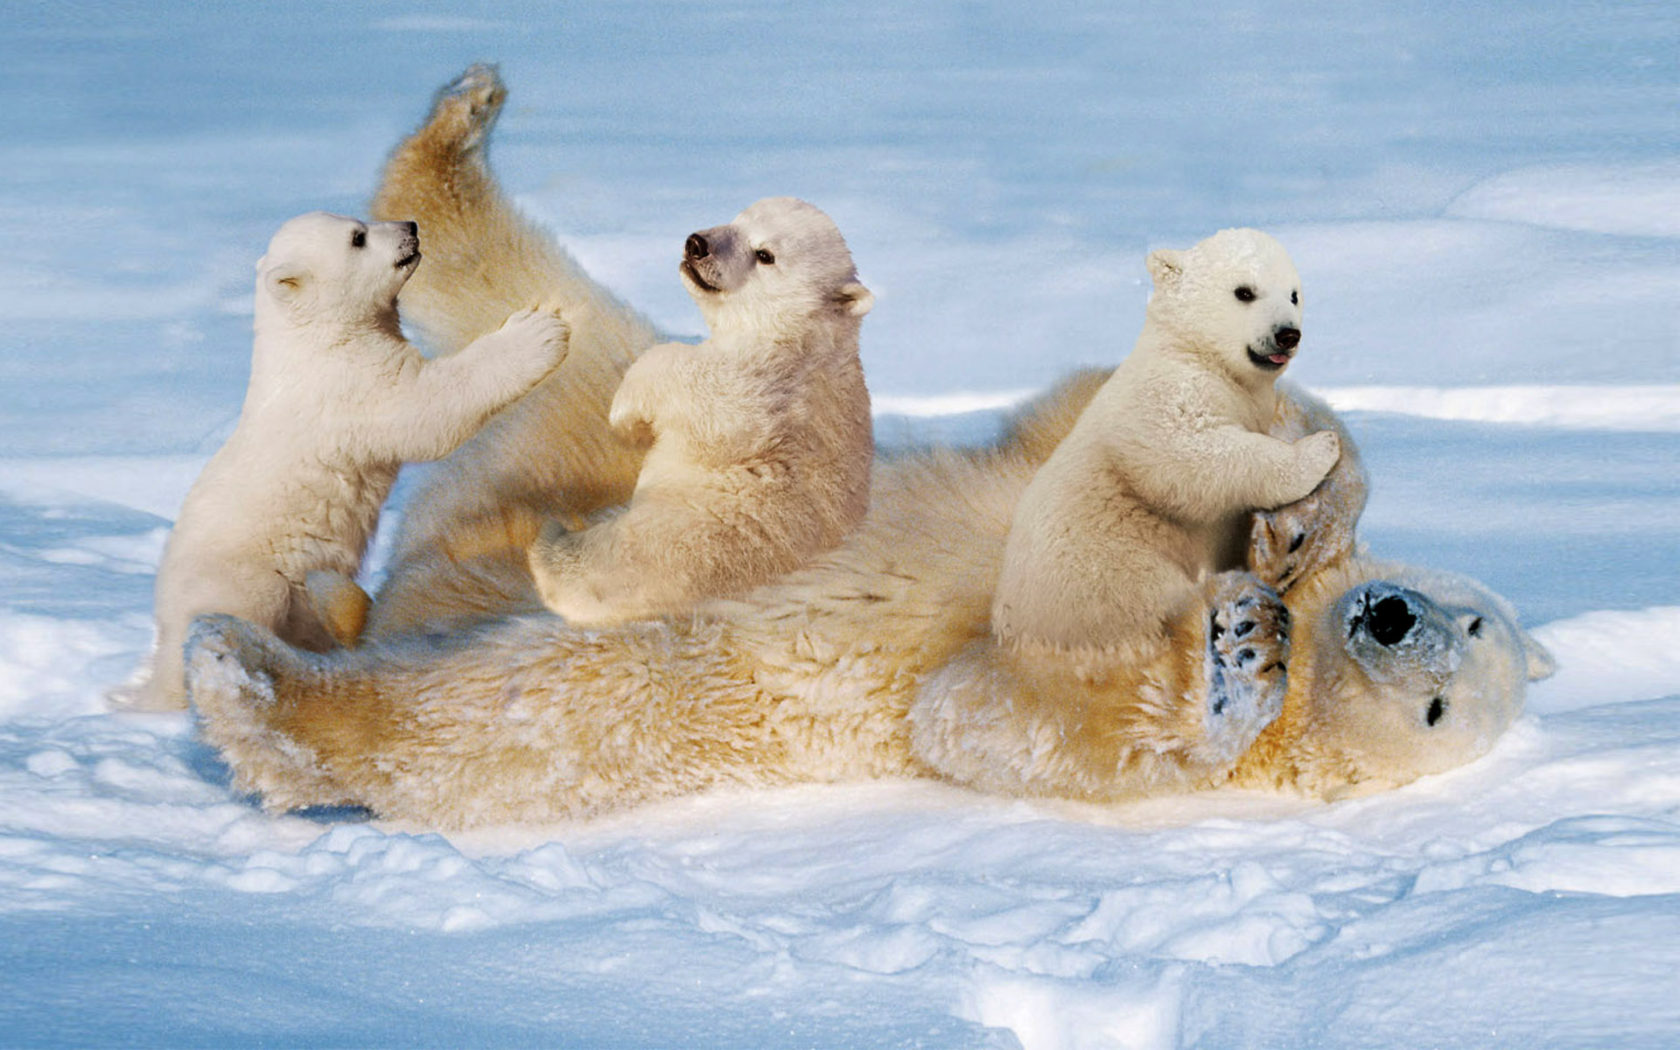 Cute Baby Lizards Wallpaper White Polar Bear With Cubs Small Cinch Staining The Snow